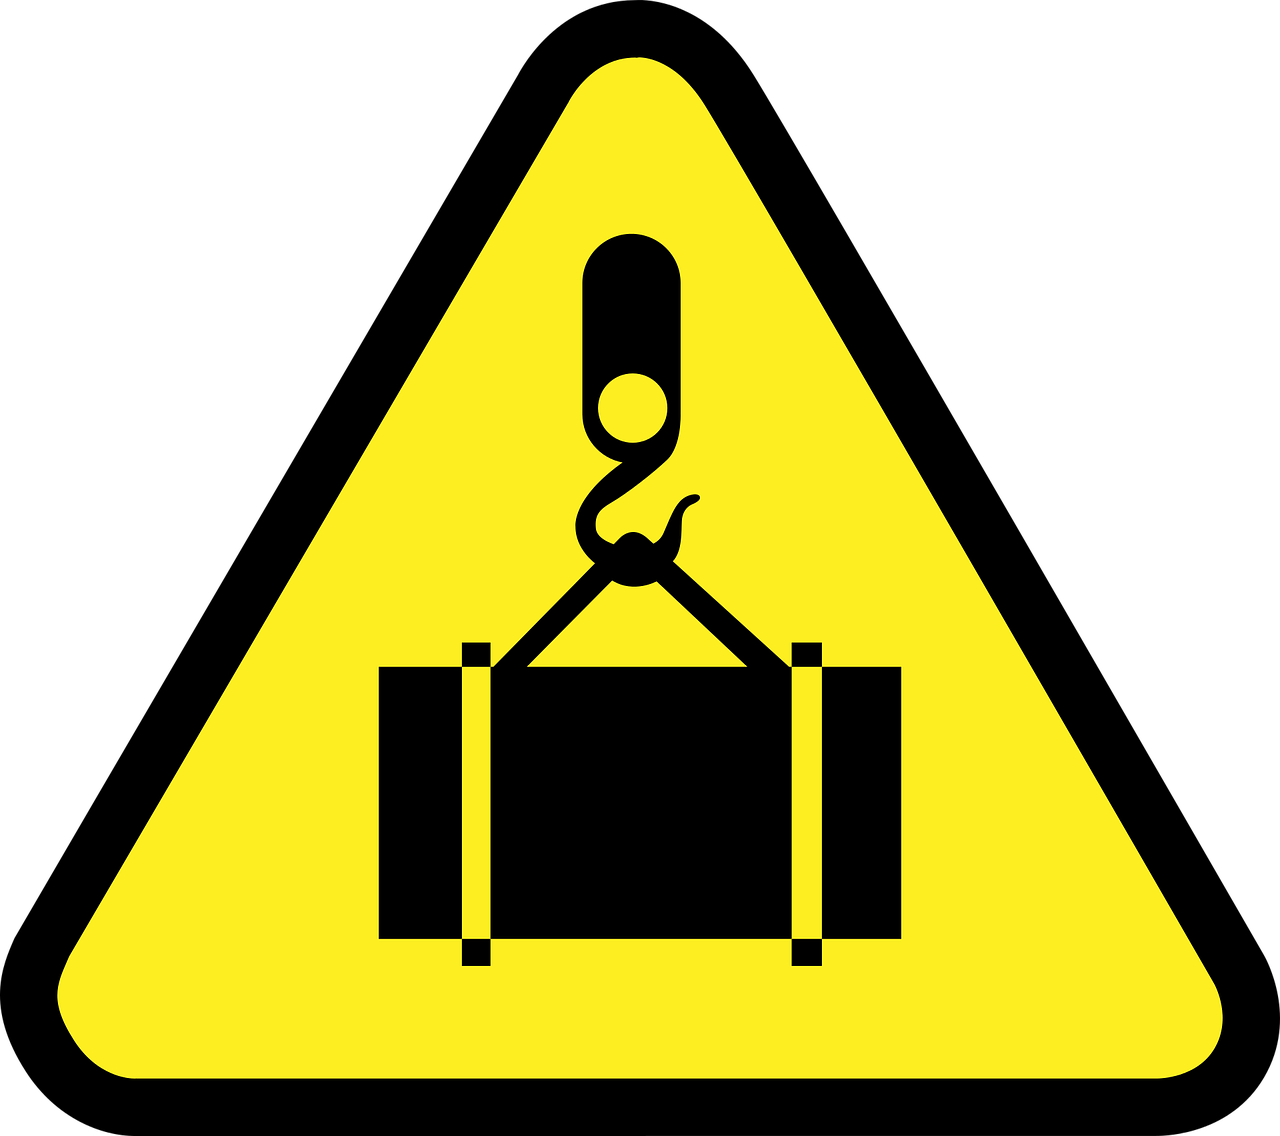 Ugt clipart jpg freeuse library HD Ugt-fica Catalunya - Overhead Crane Icon Png , Free ... jpg freeuse library